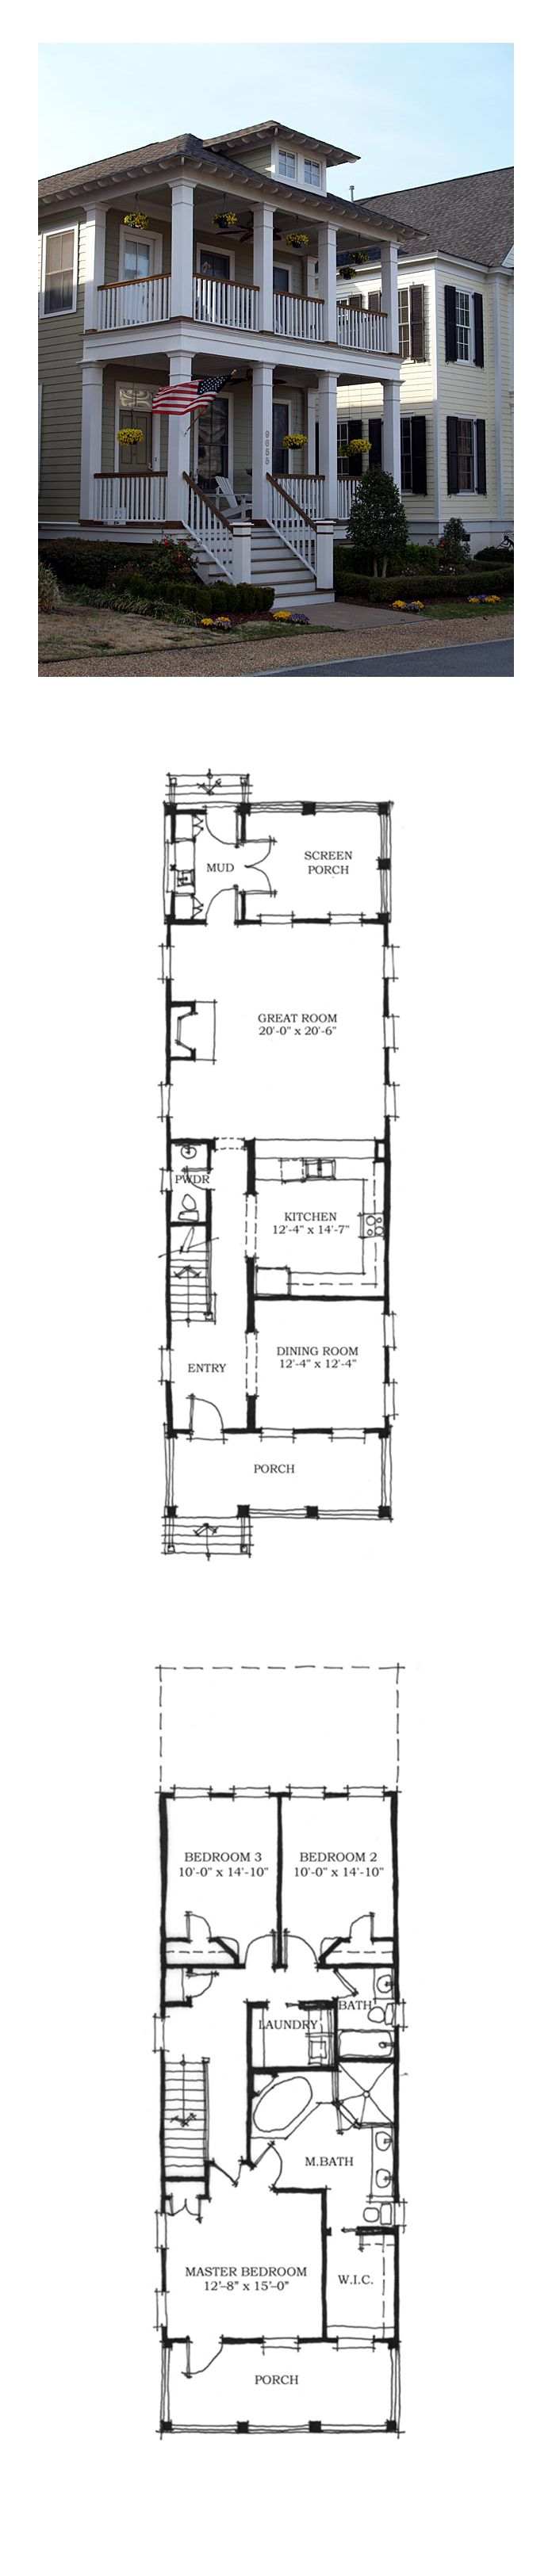 COOL House Plan ID chp 38667 Total